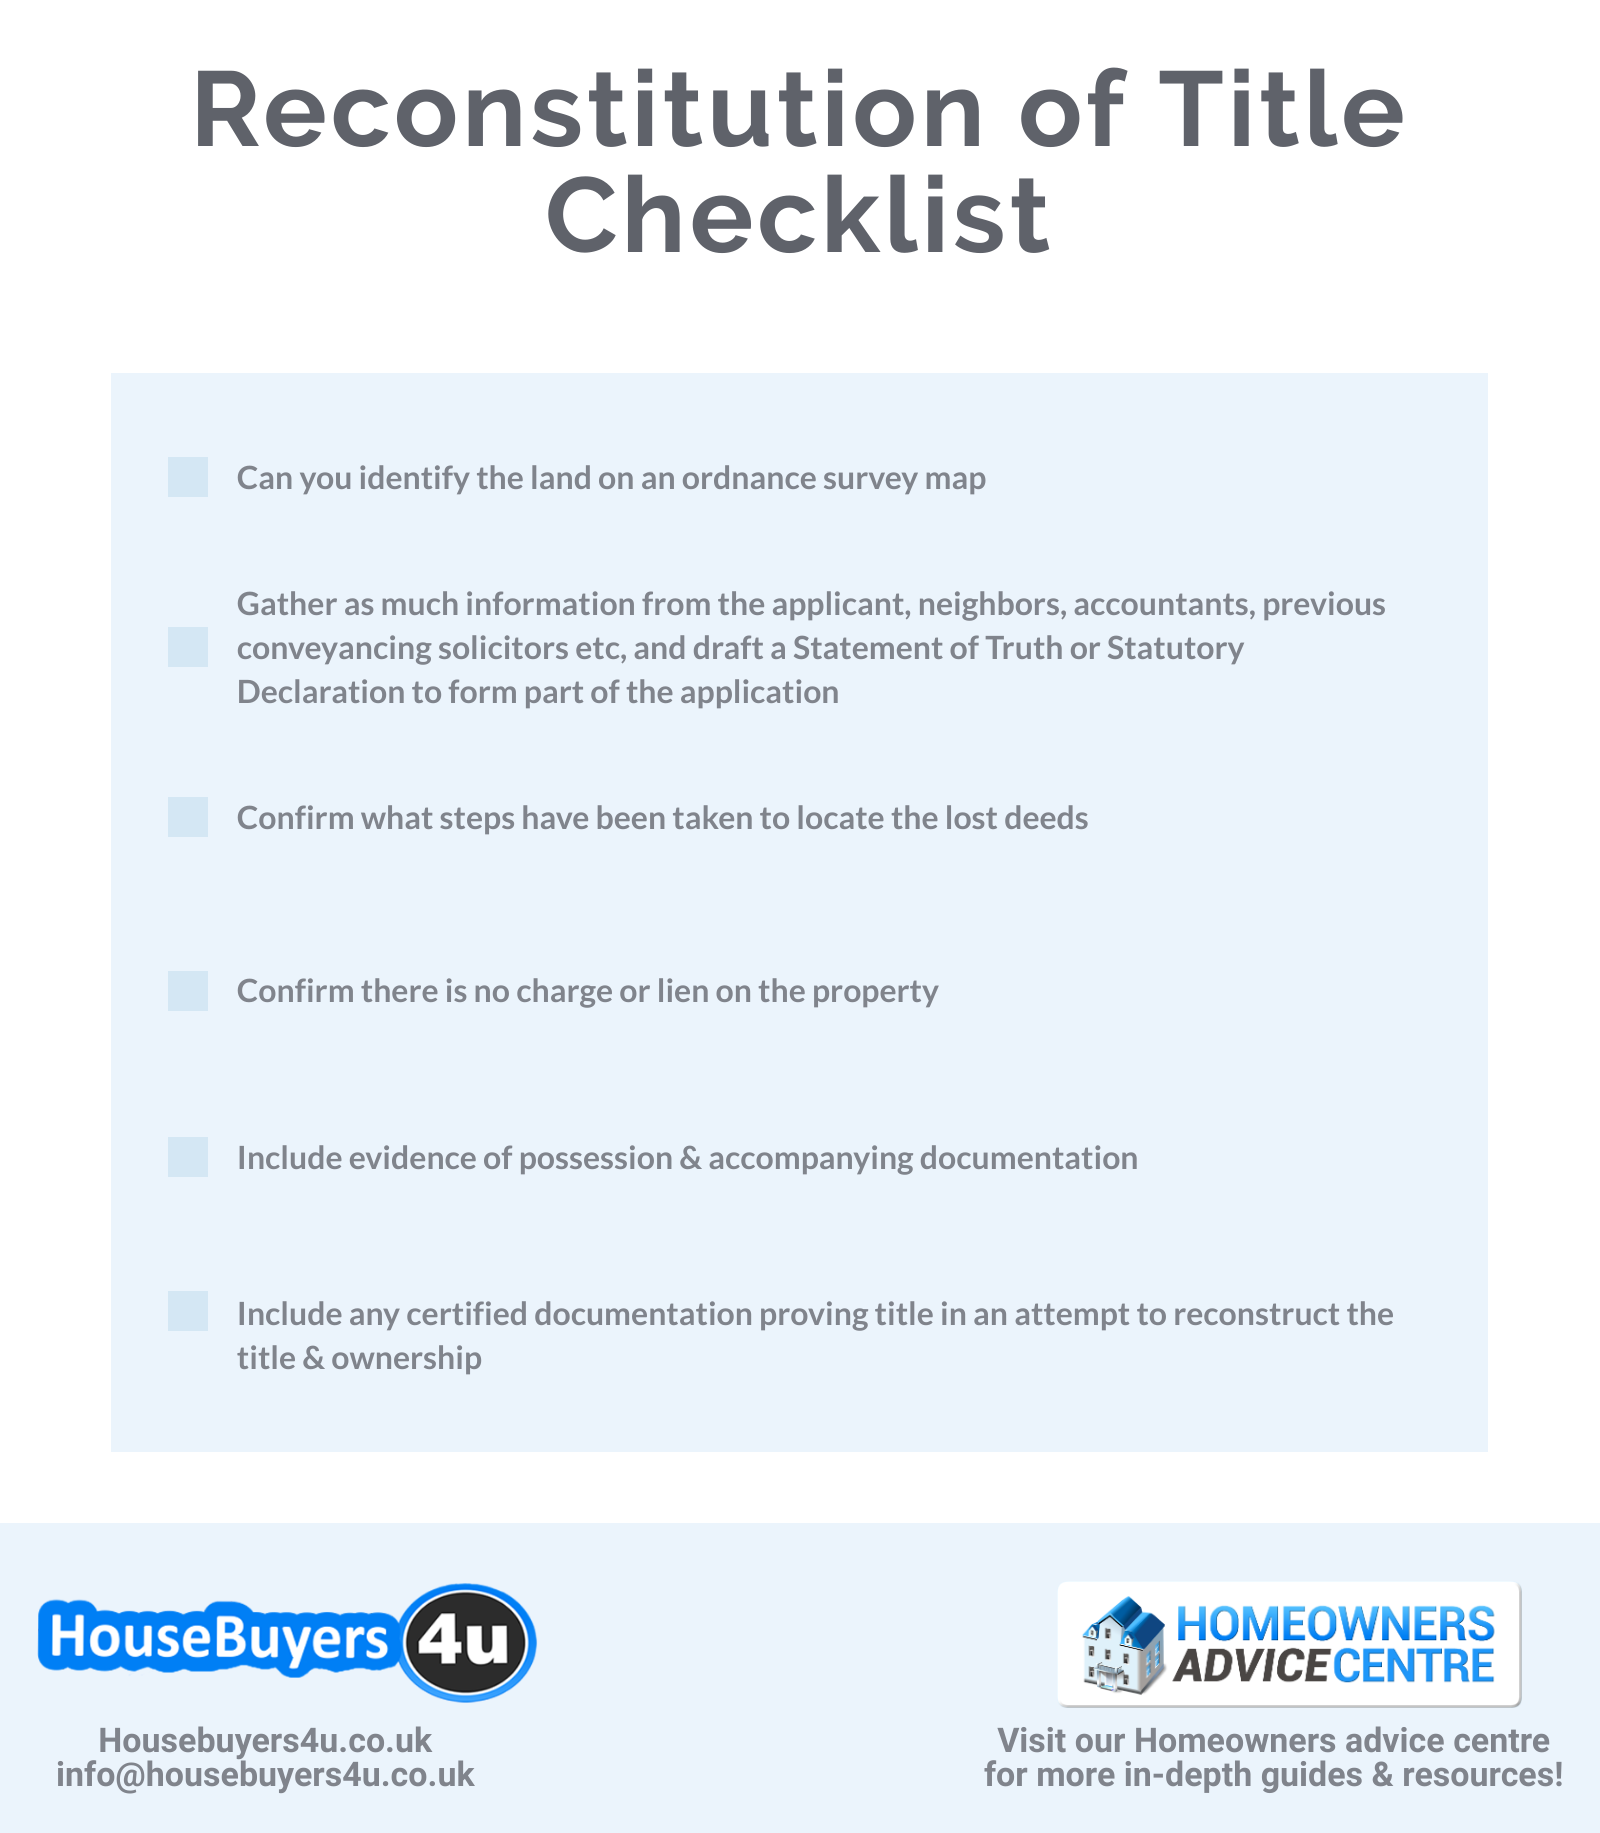 Reconstitution of Title Checklist